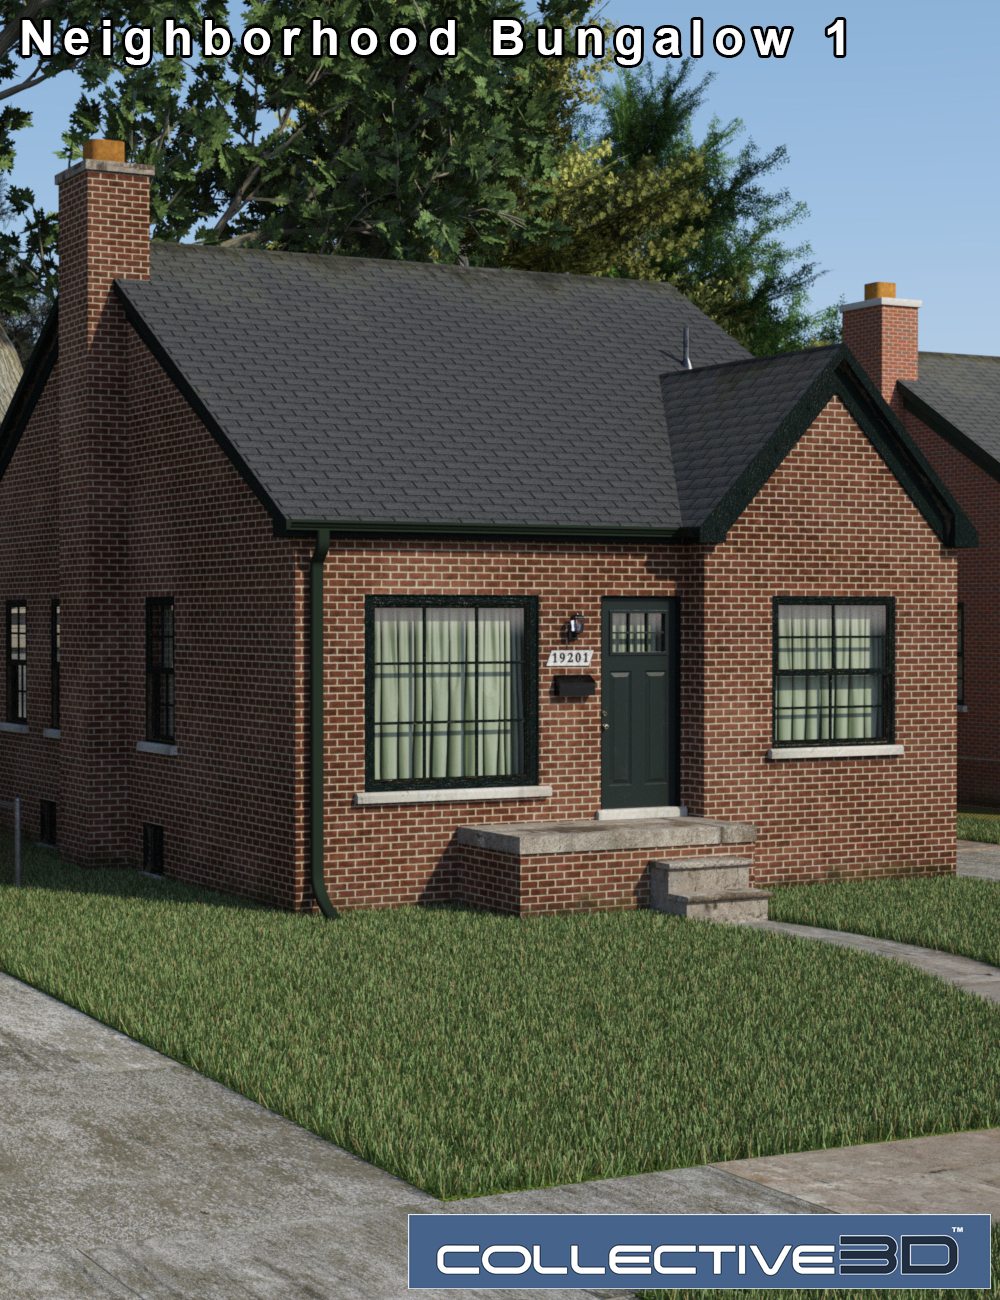 Collective3d Neighborhood Bungalow 1 by: Collective3d, 3D Models by Daz 3D